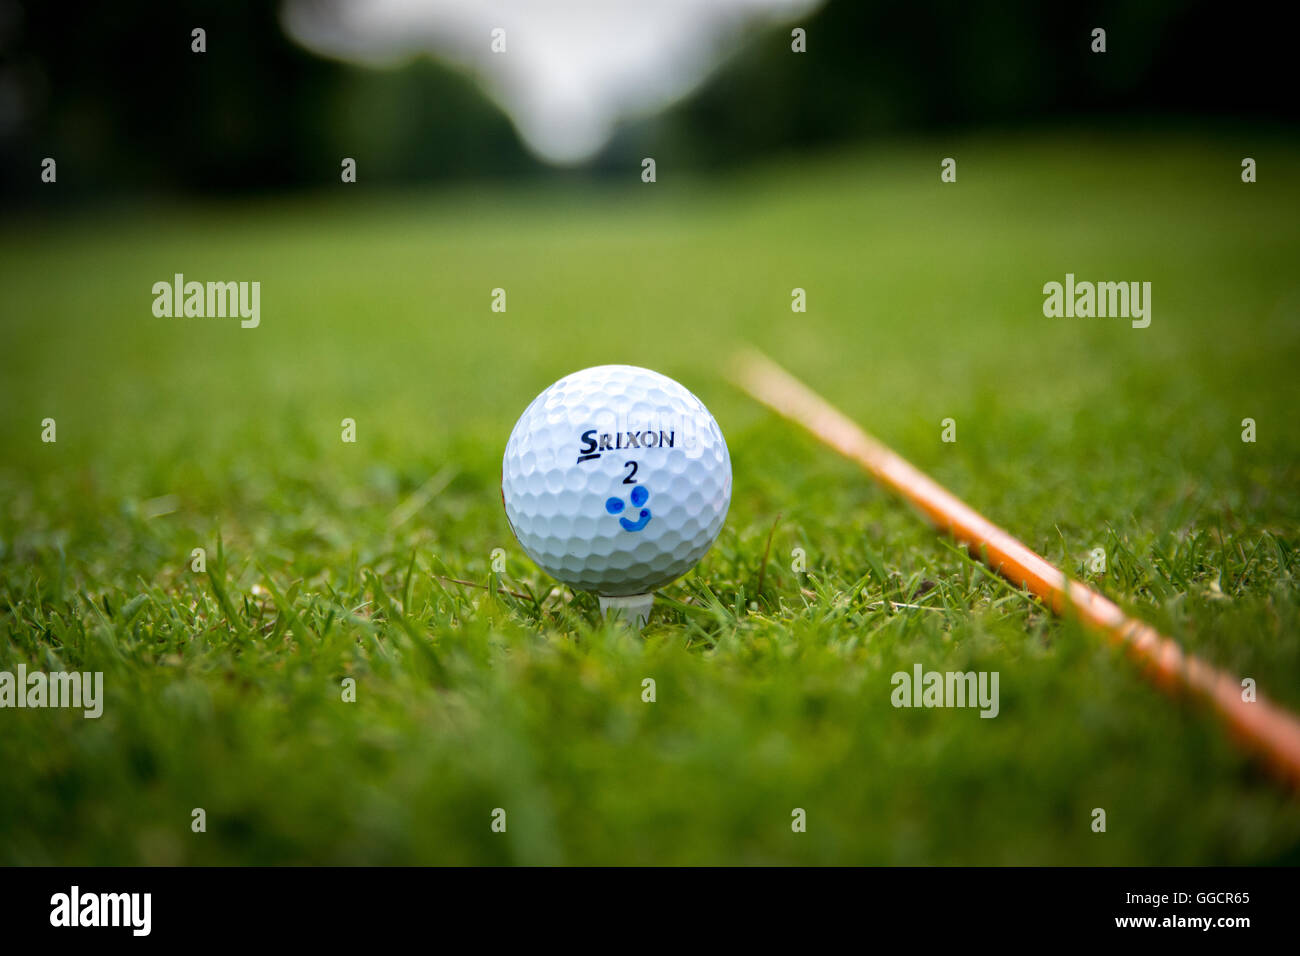 A Golf Ball resting upon a tee with alignment stick alongside - Stock Image